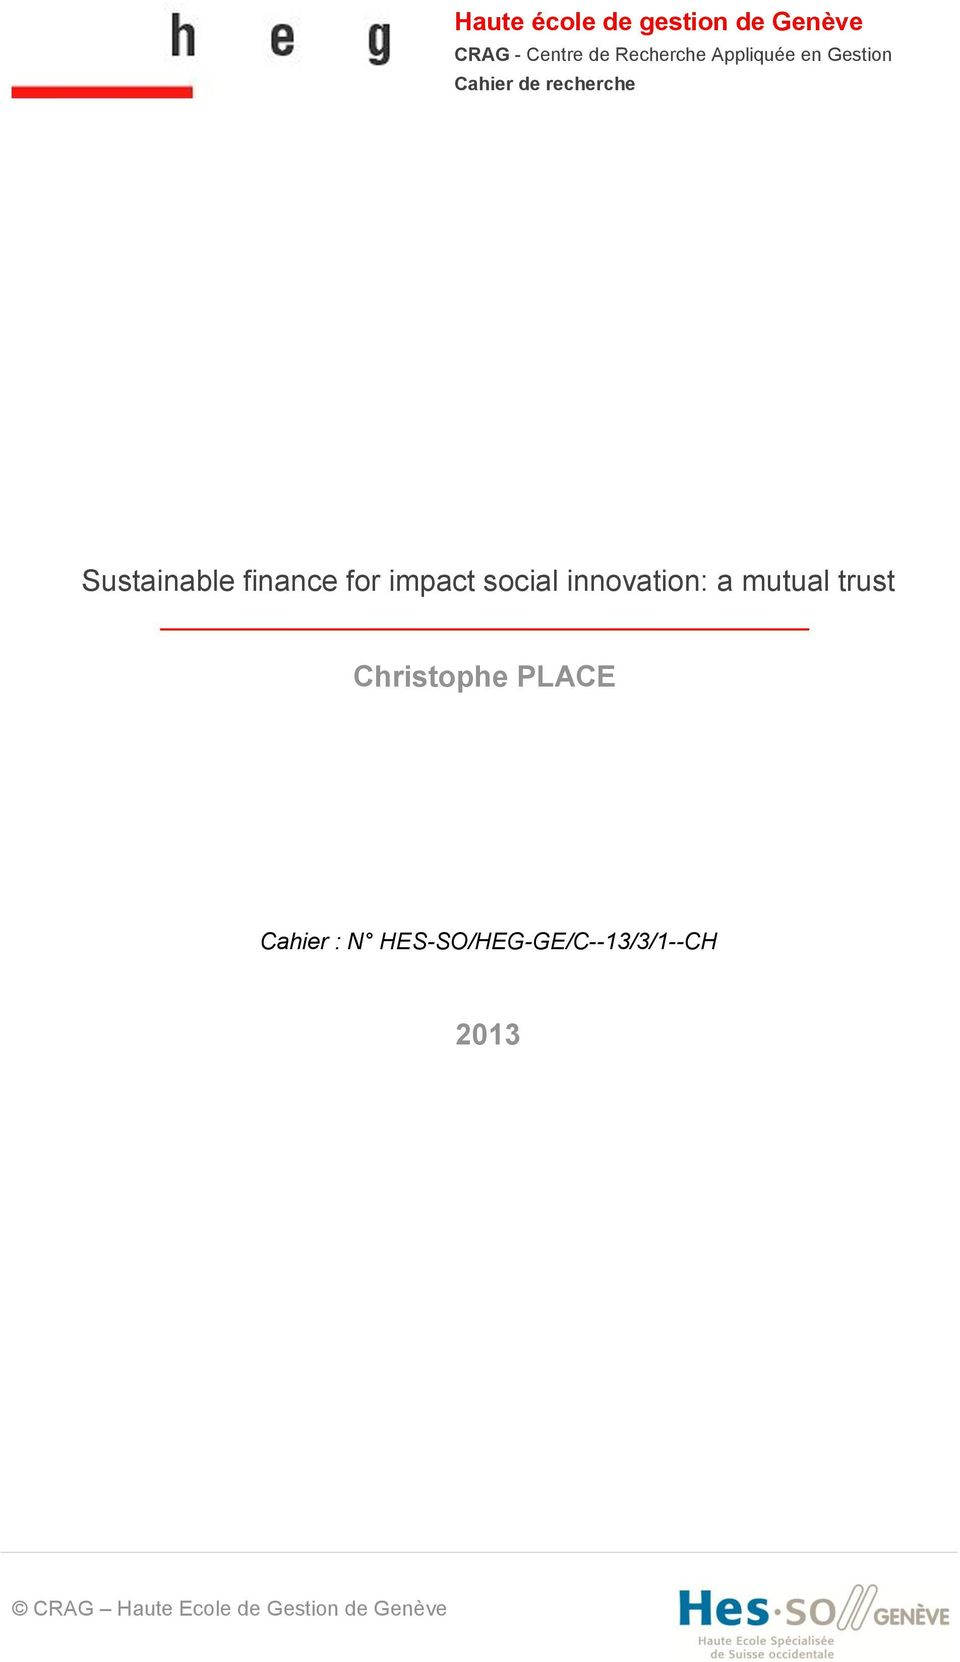 impact social innovation: a mutual trust Christophe PLACE Cahier